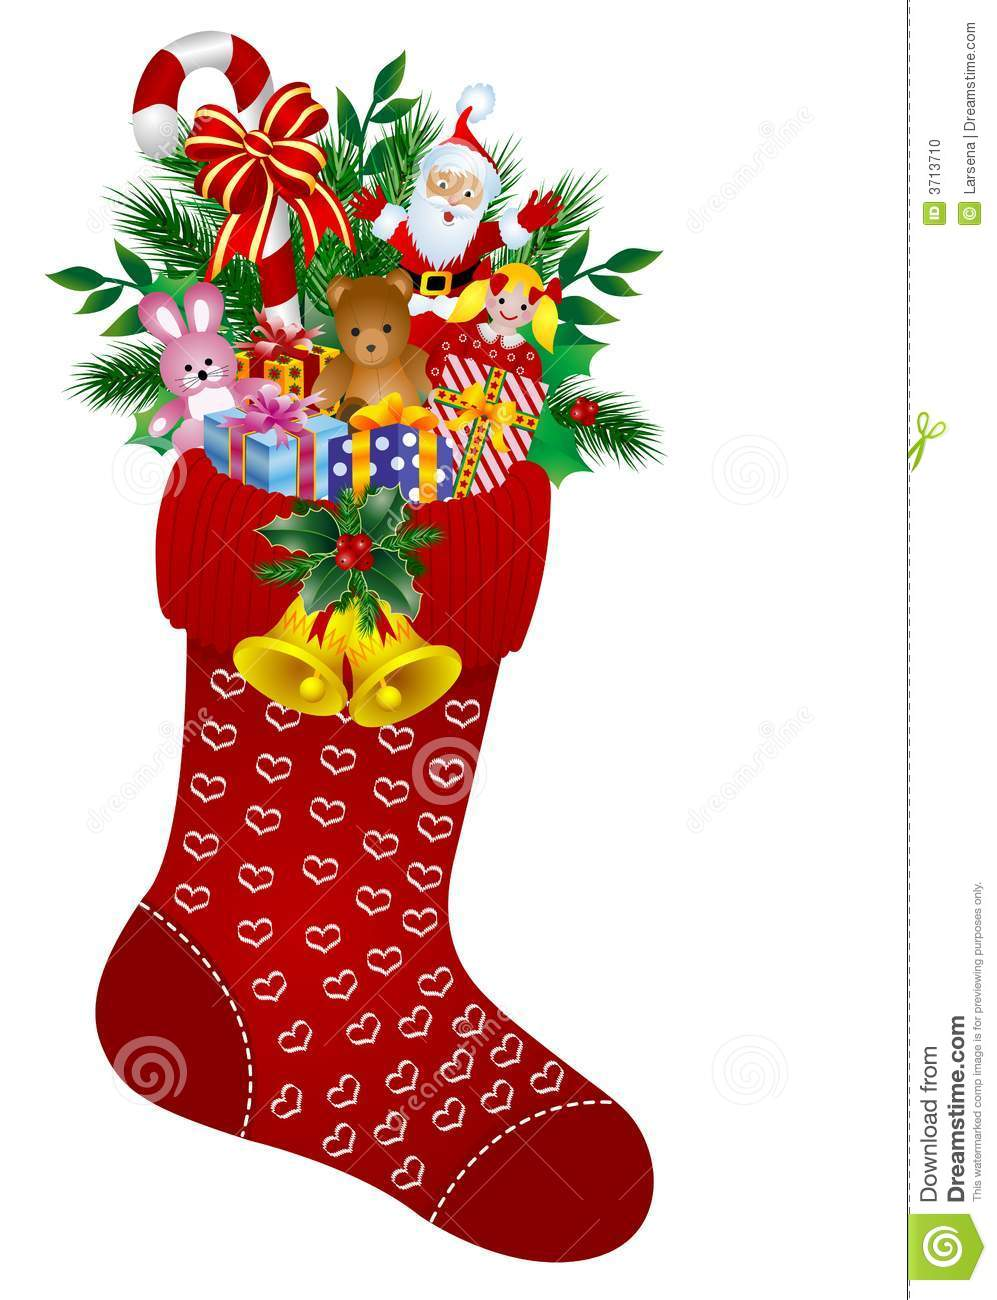 Christmas Stockings Stock Photo - Image: 3713710